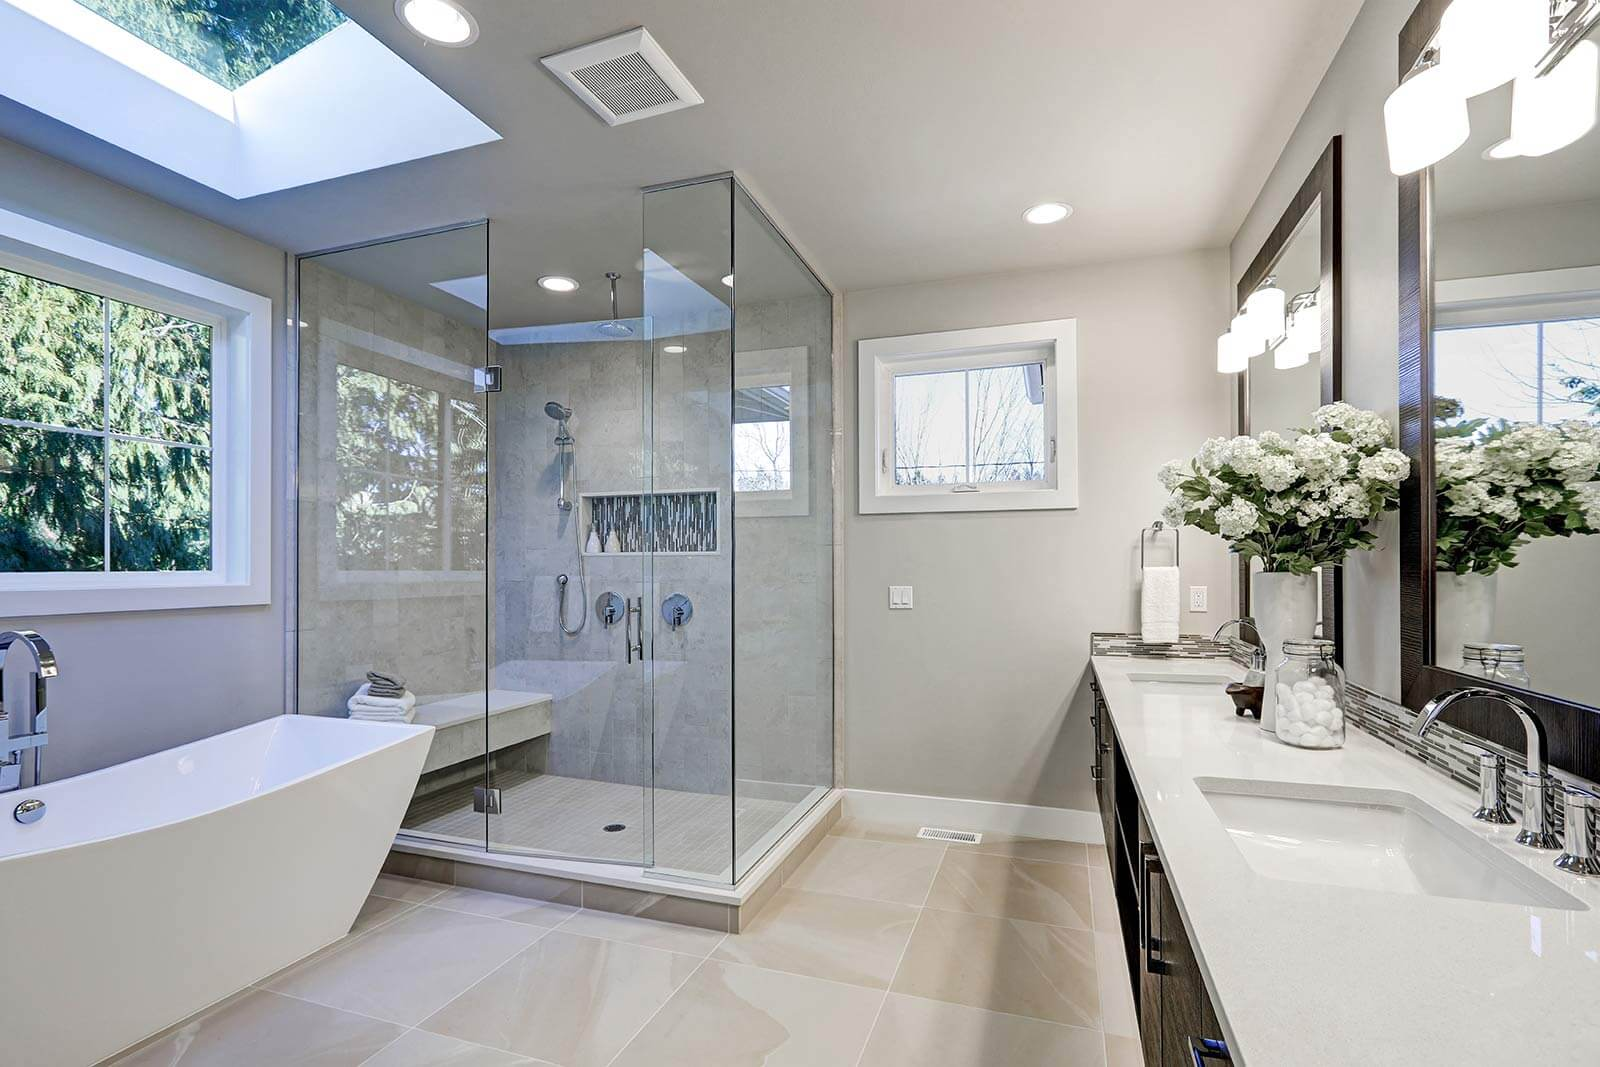 Frameless Shower Doors Near Me - Showers Without Doors by Shower Doors of Charlotte NC